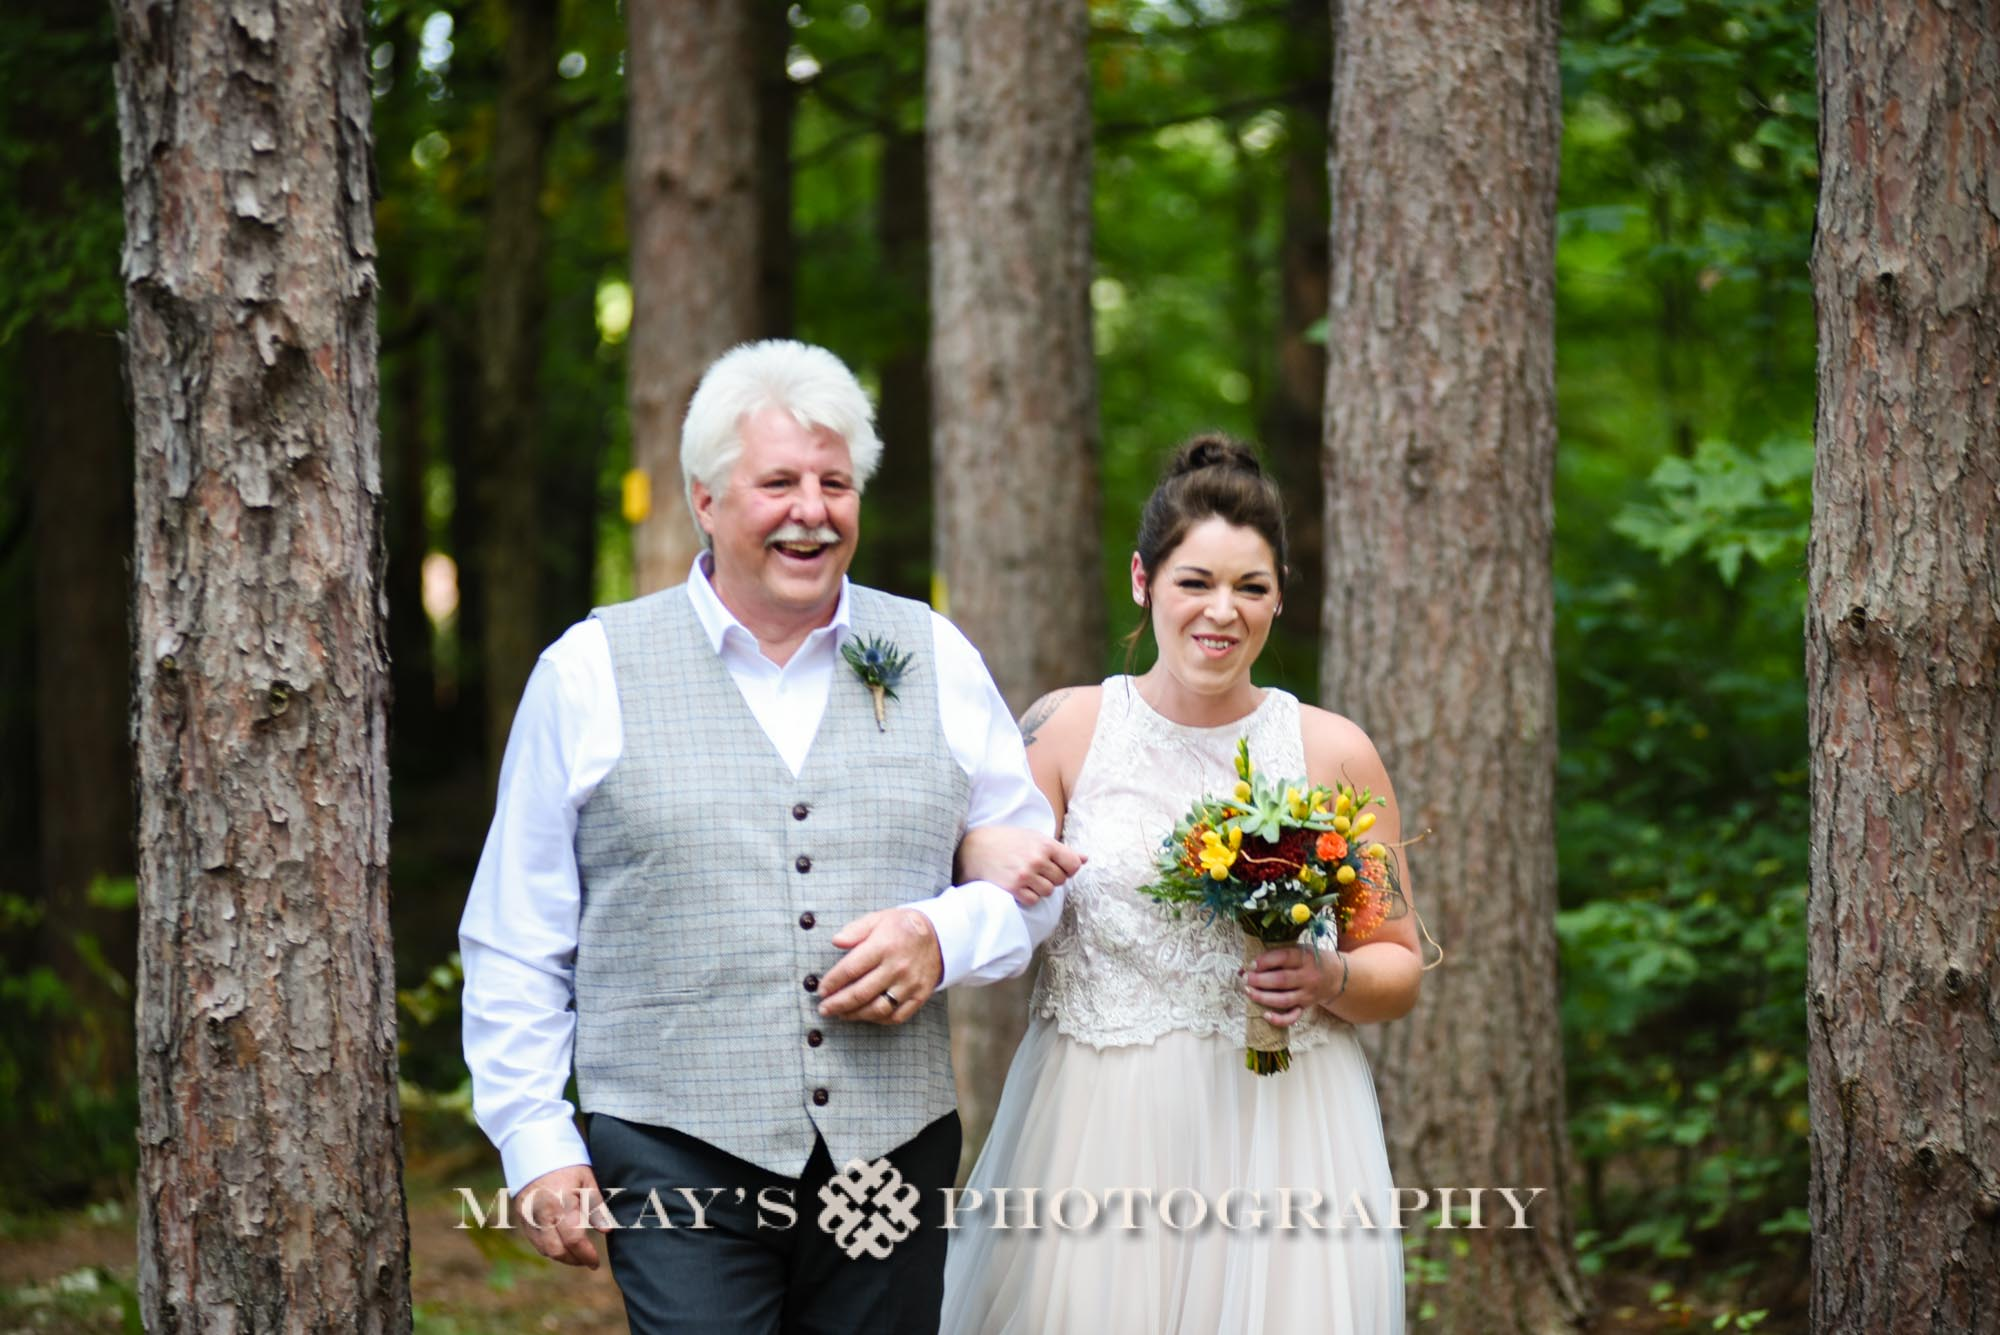 Finger Lakes wedding photographers in Rochester NY